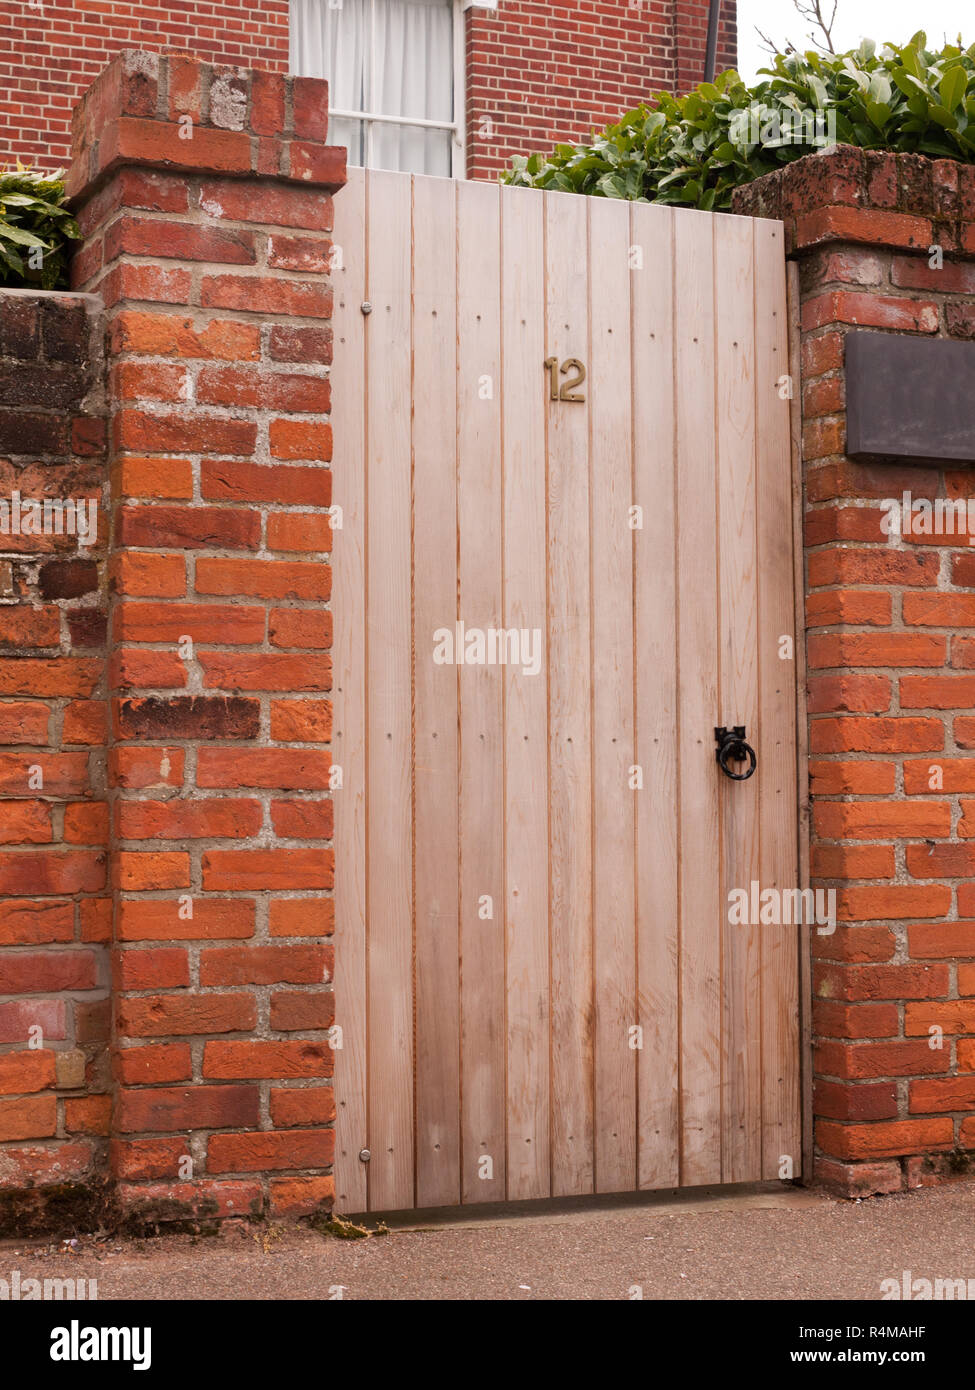 a wooden door outside closed with the number 12 on it and attached to a high wall on a house Stock Photo